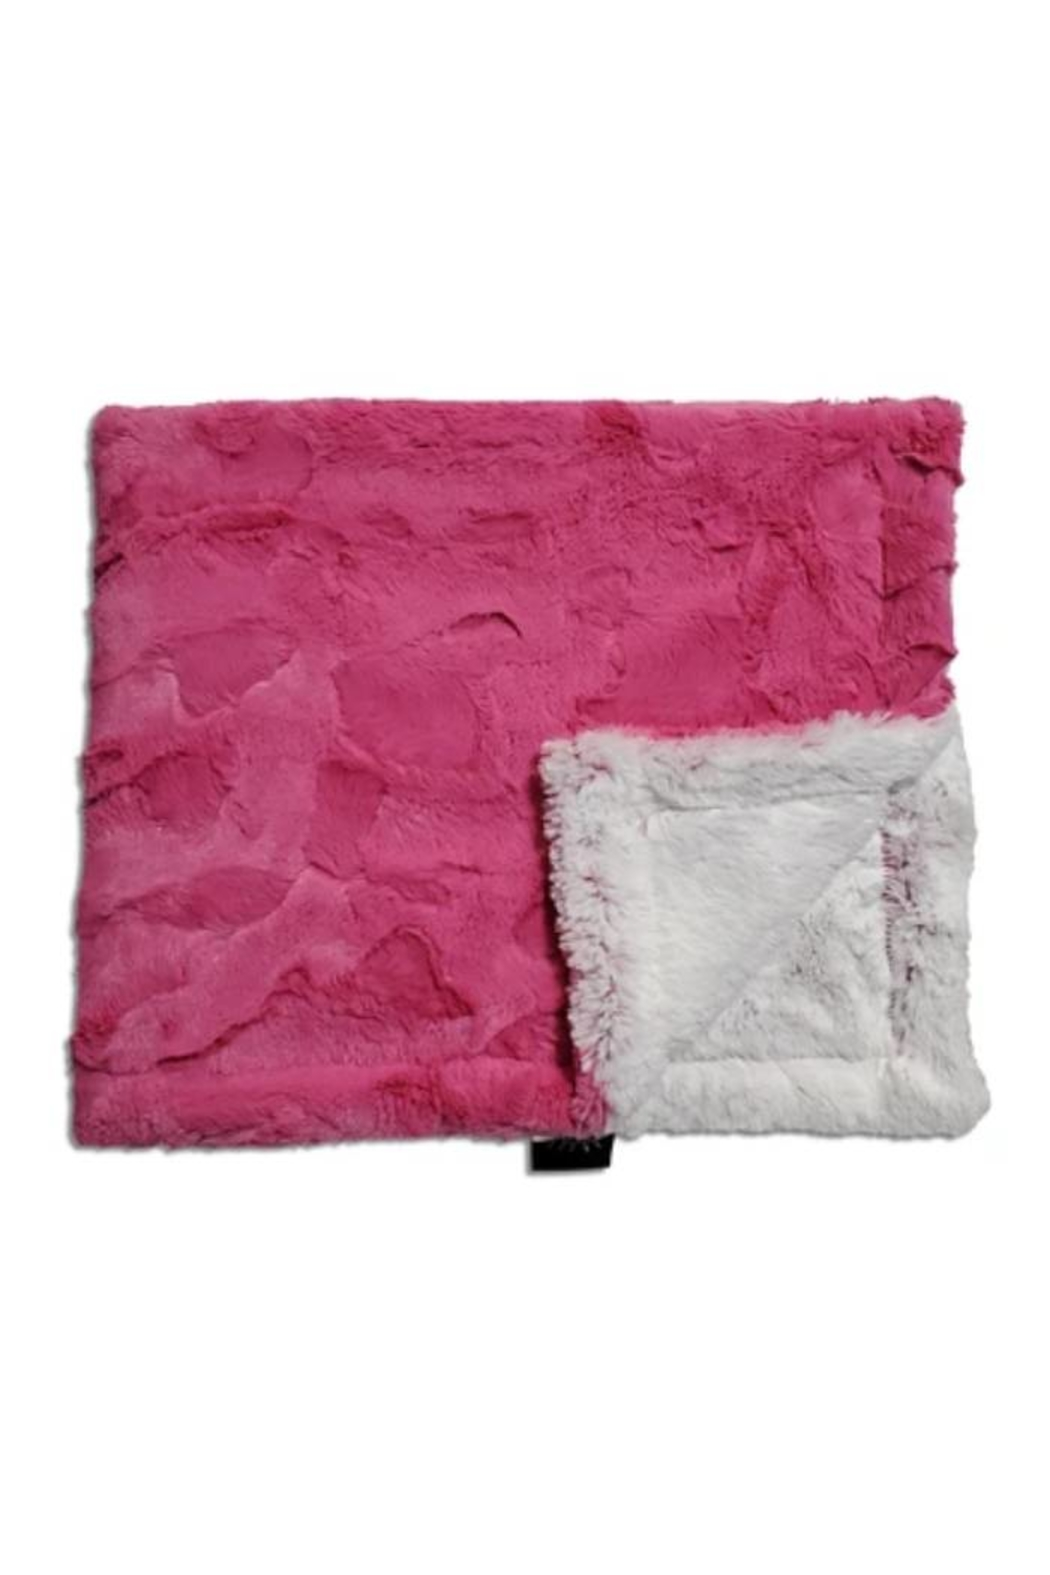 Winx+Blinx Fuschia Frost Mini Minky Blanket (13 X 12.5 Inches)for Newborn Baby Boys Girls Winter Swaddle - Main Image